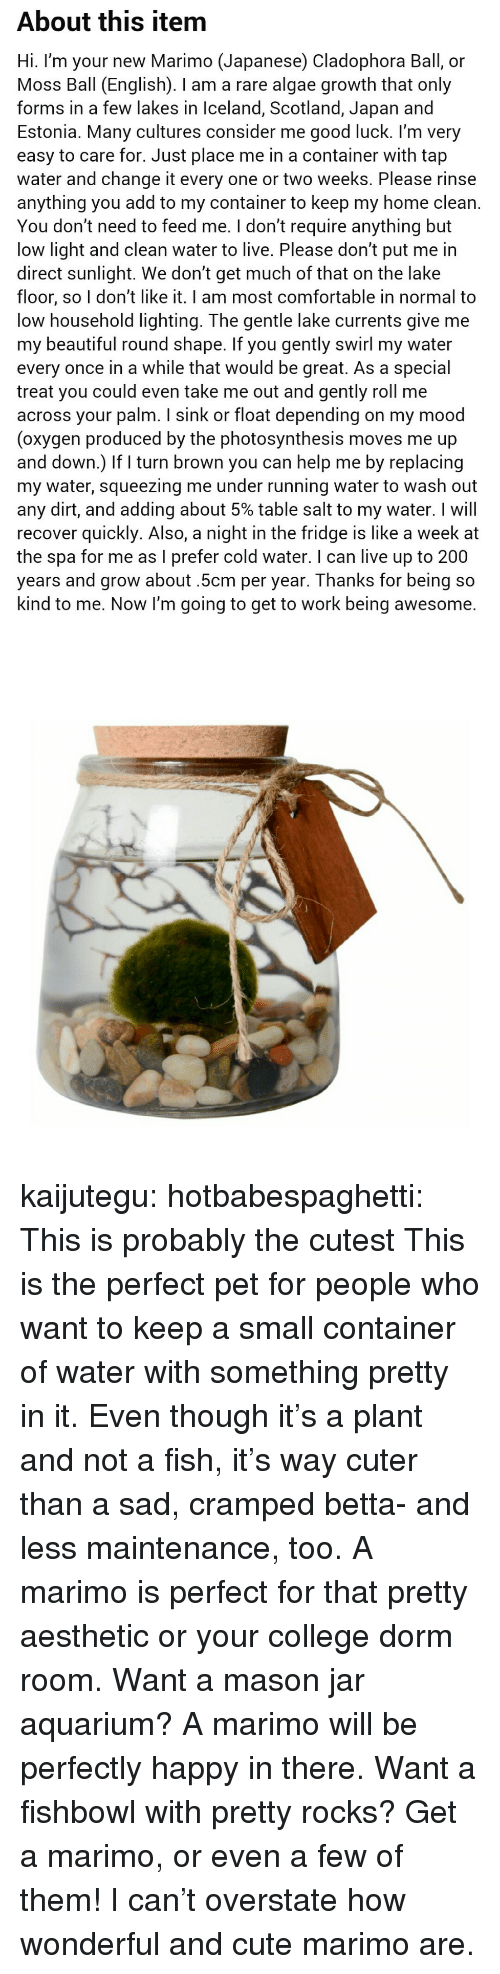 estonia: About this item  Hi. I'm your new Marimo (Japanese) Cladophora Ball, or  Moss Ball (English). I am a rare algae growth that only  forms in a few lakes in Iceland, Scotland, Japan and  Estonia. Many cultures consider me good luck. l'm very  easy to care for. Just place me in a container with tap  water and change it every one or two weeks. Please rinse  anything you add to my container to keep my home clean.  You don't need to feed me. I don't require anything but  low light and clean water to live. Please don't put me in  direct sunlight. We don't get much of that on the lake  floor, so I don't like it. I am most comfortable in normal to  low household lighting. The gentle lake currents give me  my beautiful round shape. If you gently swirl my water  every once in a while that would be great. As a special  treat you could even take me out and gently roll me  across your palm. I sink or float depending on my mood  (oxygen produced by the photosynthesis moves me up  and down.) If turn brown you can help me by replacing  my water, squeezing me under running water to wash out  any dirt, and adding about 5% table salt to my water. I will  recover quickly. Also, a night in the fridge is like a week at  the spa for me as I prefer cold water. I can live up to 200  years and grow about.5cm per year. Thanks for being so  kind to me. Now I'm going to get to work being awesome. kaijutegu: hotbabespaghetti: This is probably the cutest  This is the perfect pet for people who want to keep a small container of water with something pretty in it. Even though it's a plant and not a fish, it's way cuter than a sad, cramped betta- and less maintenance, too. A marimo is perfect for that pretty aesthetic or your college dorm room. Want a mason jar aquarium? A marimo will be perfectly happy in there. Want a fishbowl with pretty rocks? Get a marimo, or even a few of them! I can't overstate how wonderful and cute marimo are.